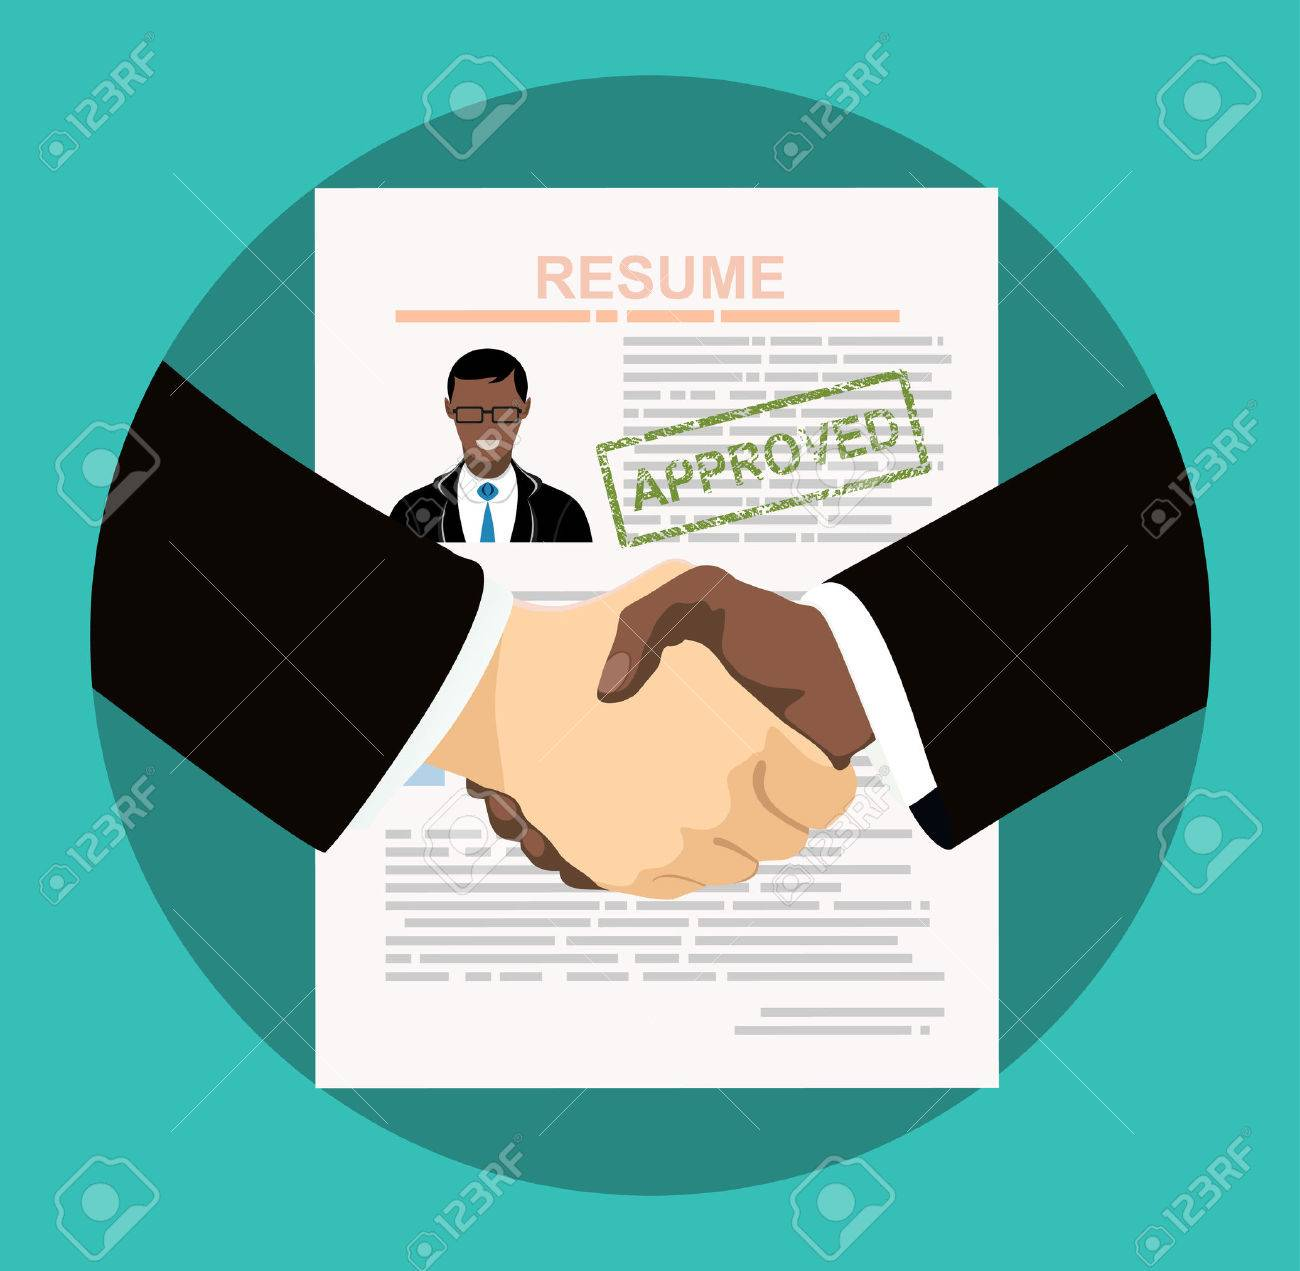 business handshake human resources management concept searching